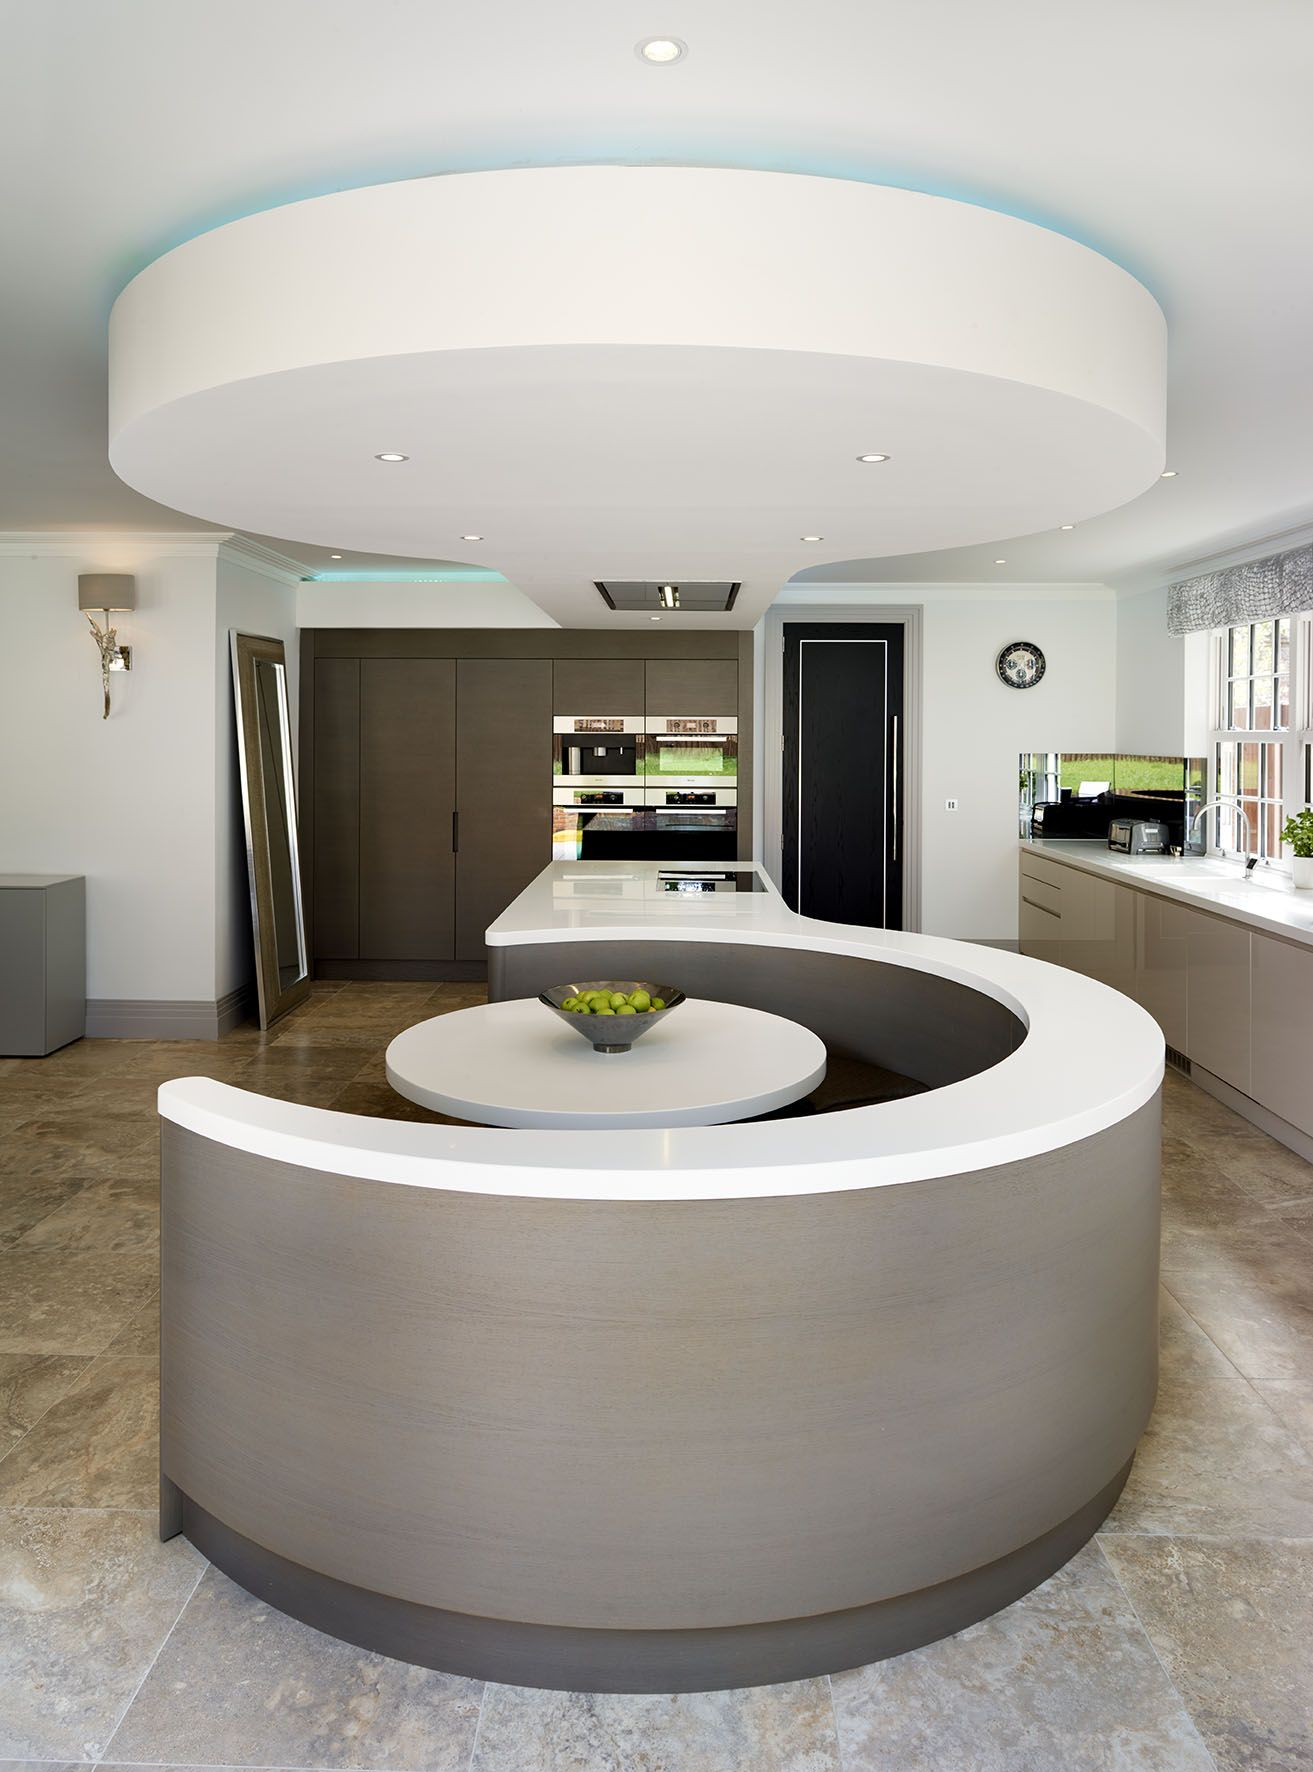 The Curved Banquette Seating